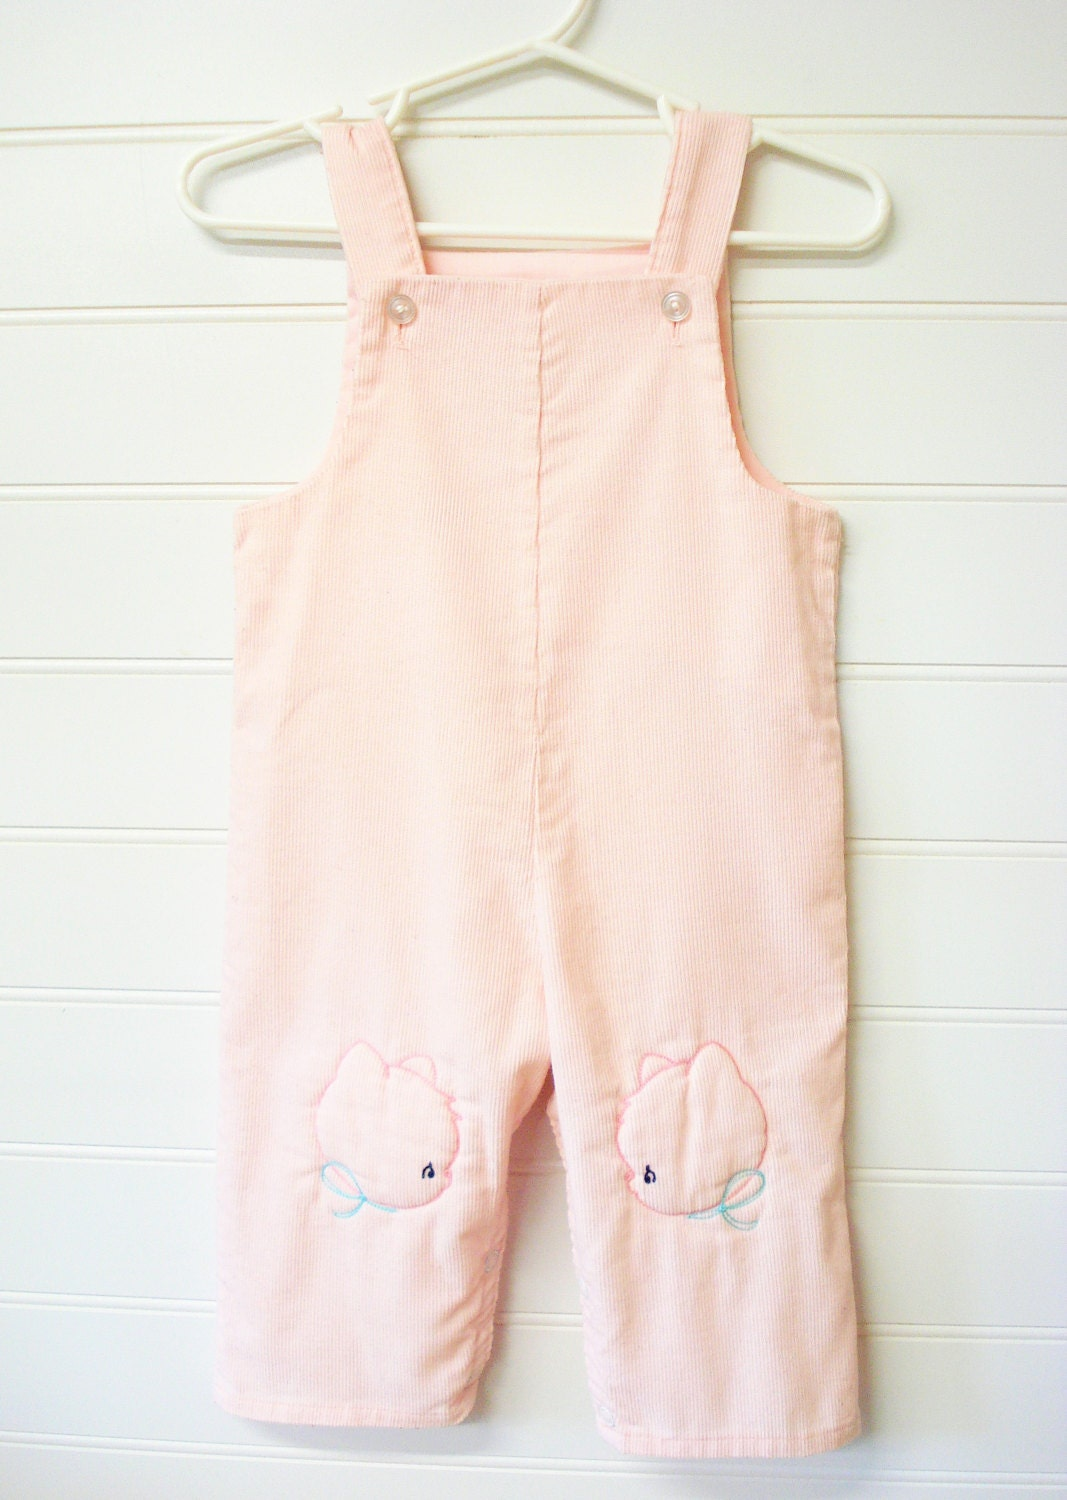 Vintage Baby Clothes Baby Girl Overalls Romper Light Pink